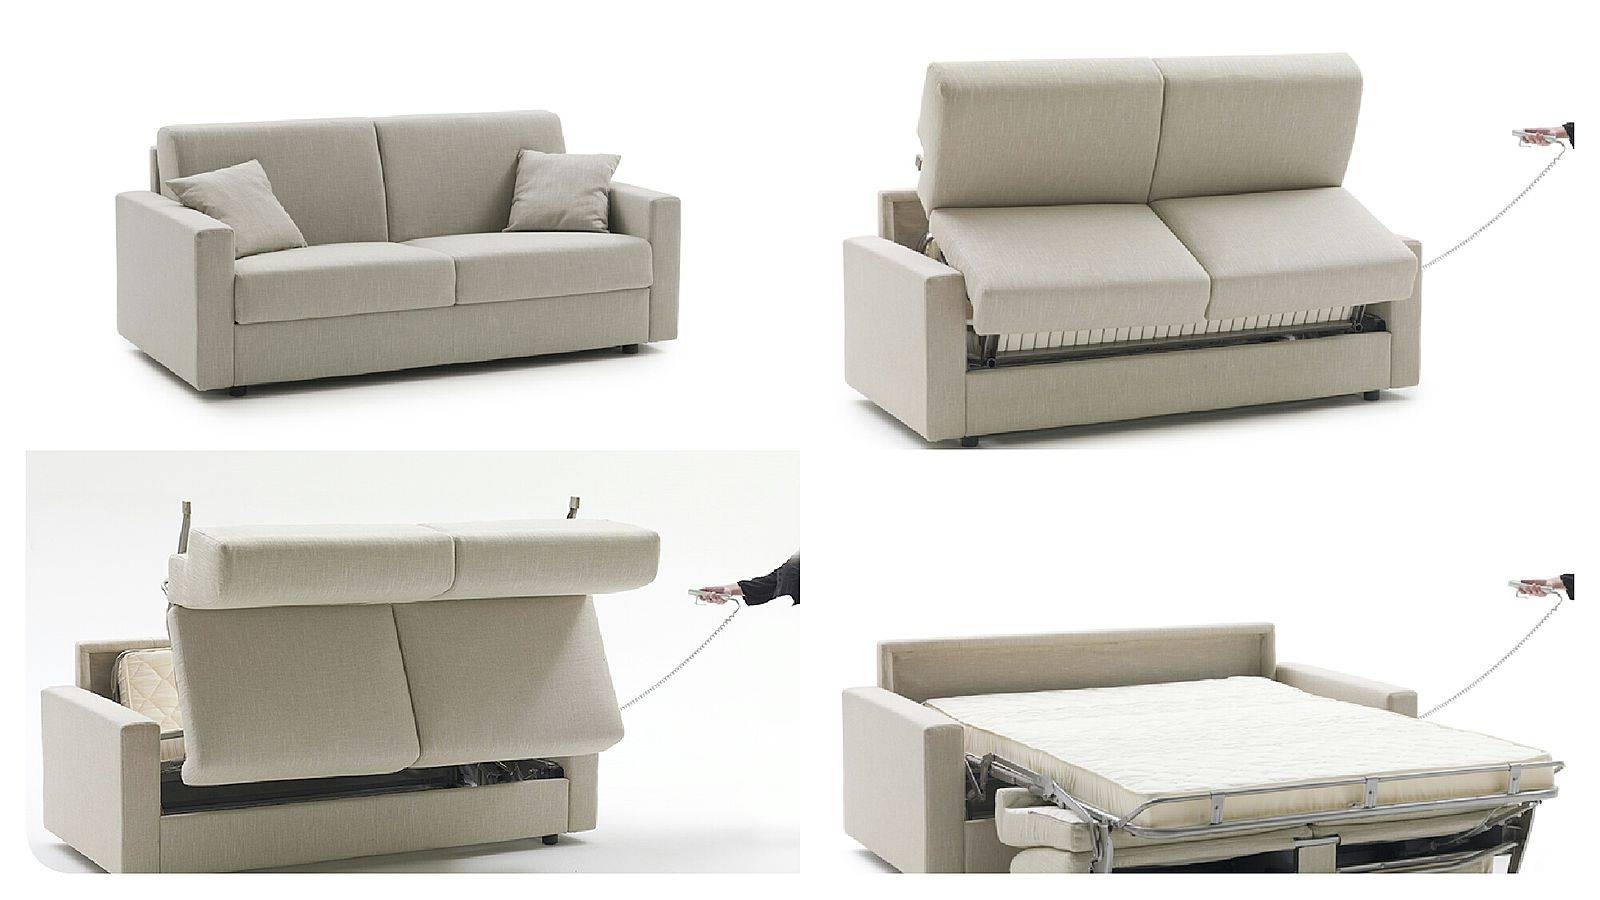 Lampo Motion From Milano Bedding Is A Stylish Sofa Bed With Regarding Electric Sofa Beds (Photo 10 of 15)